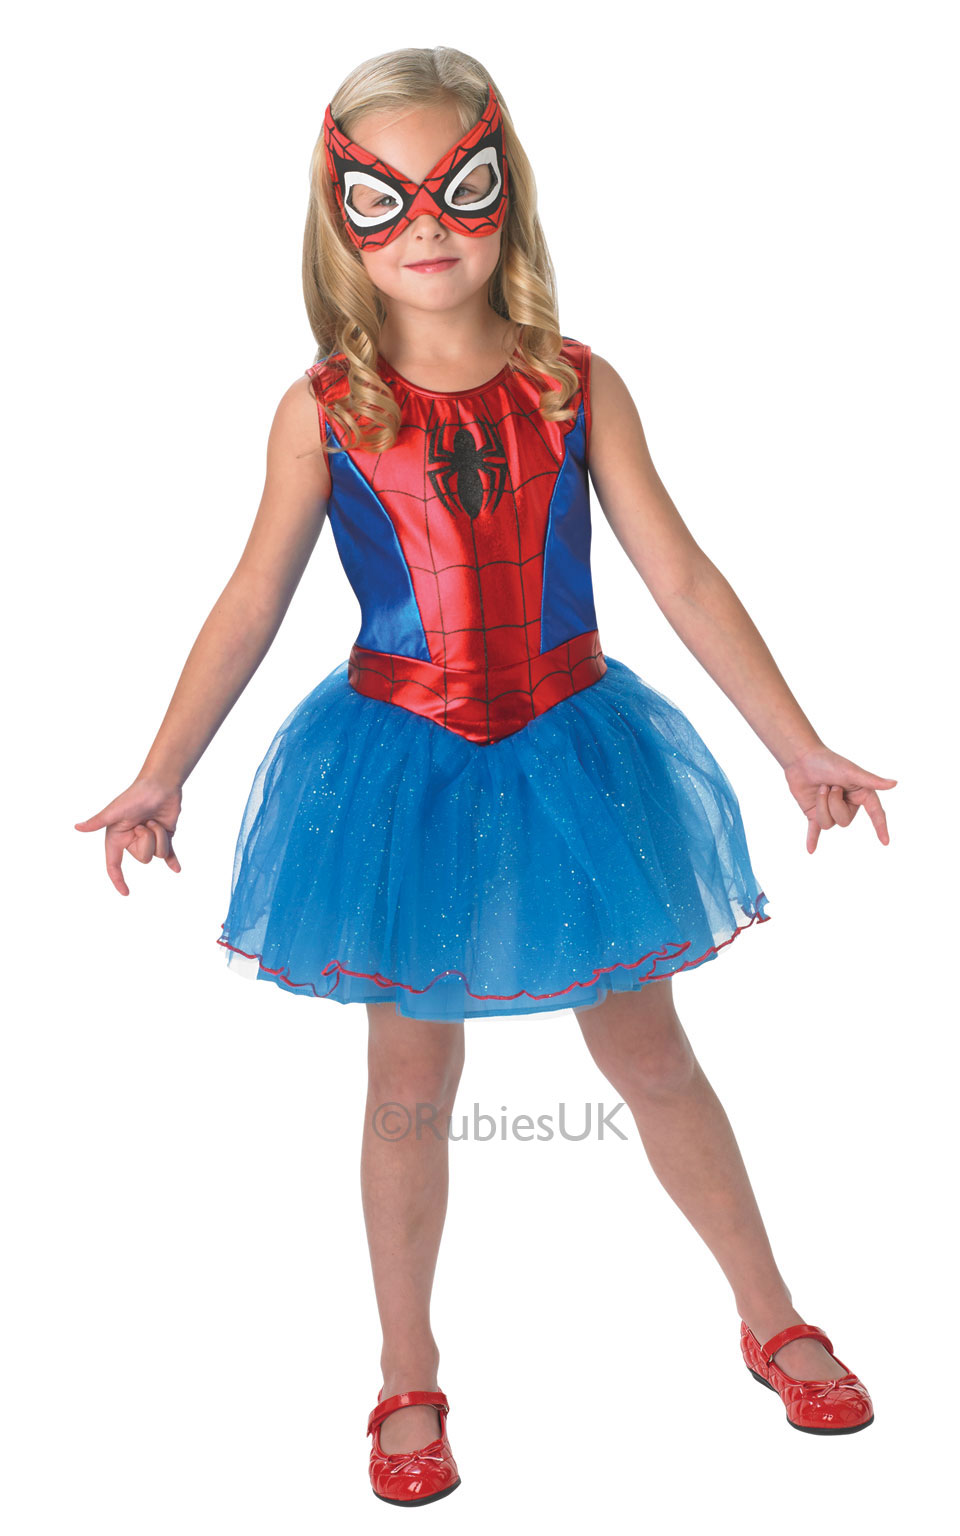 Girls Kids Childs Spidergirl Fancy Dress Costume Outfit Superhero Comic